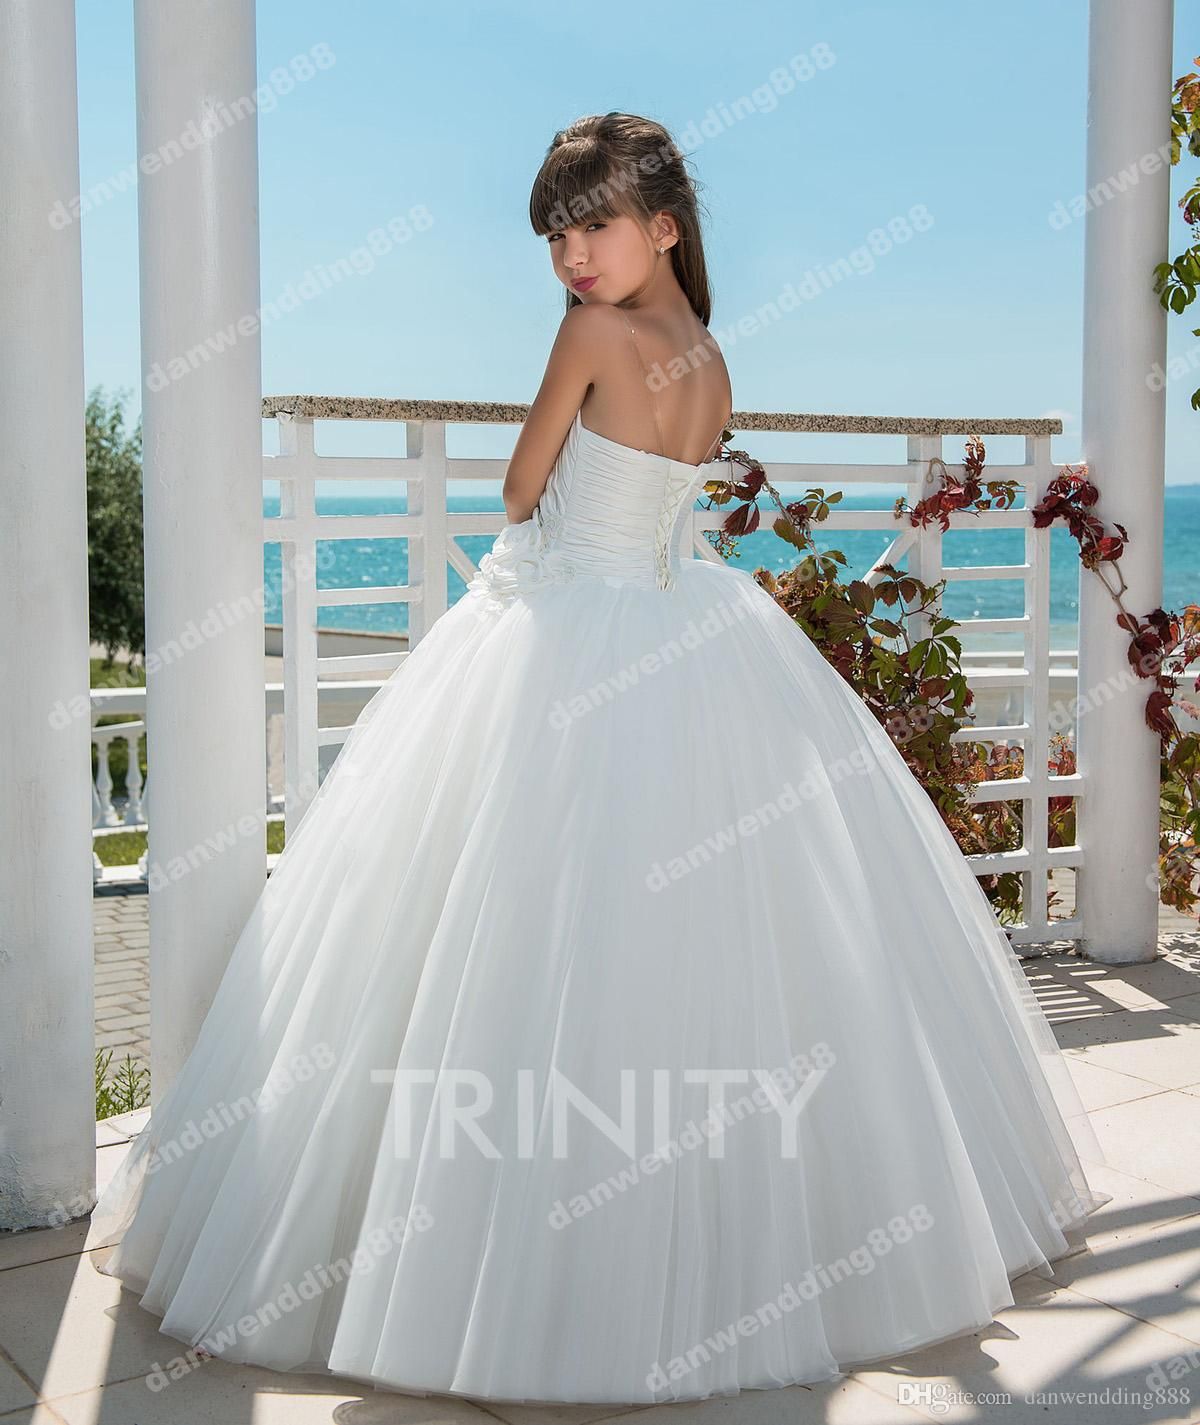 Elegant Beach White Tulle Strapless Flower Girl Dresses Princess Dresses Girl's Pageant Dresses Custom Made Size 2-6 8 10 12 14 KF404355